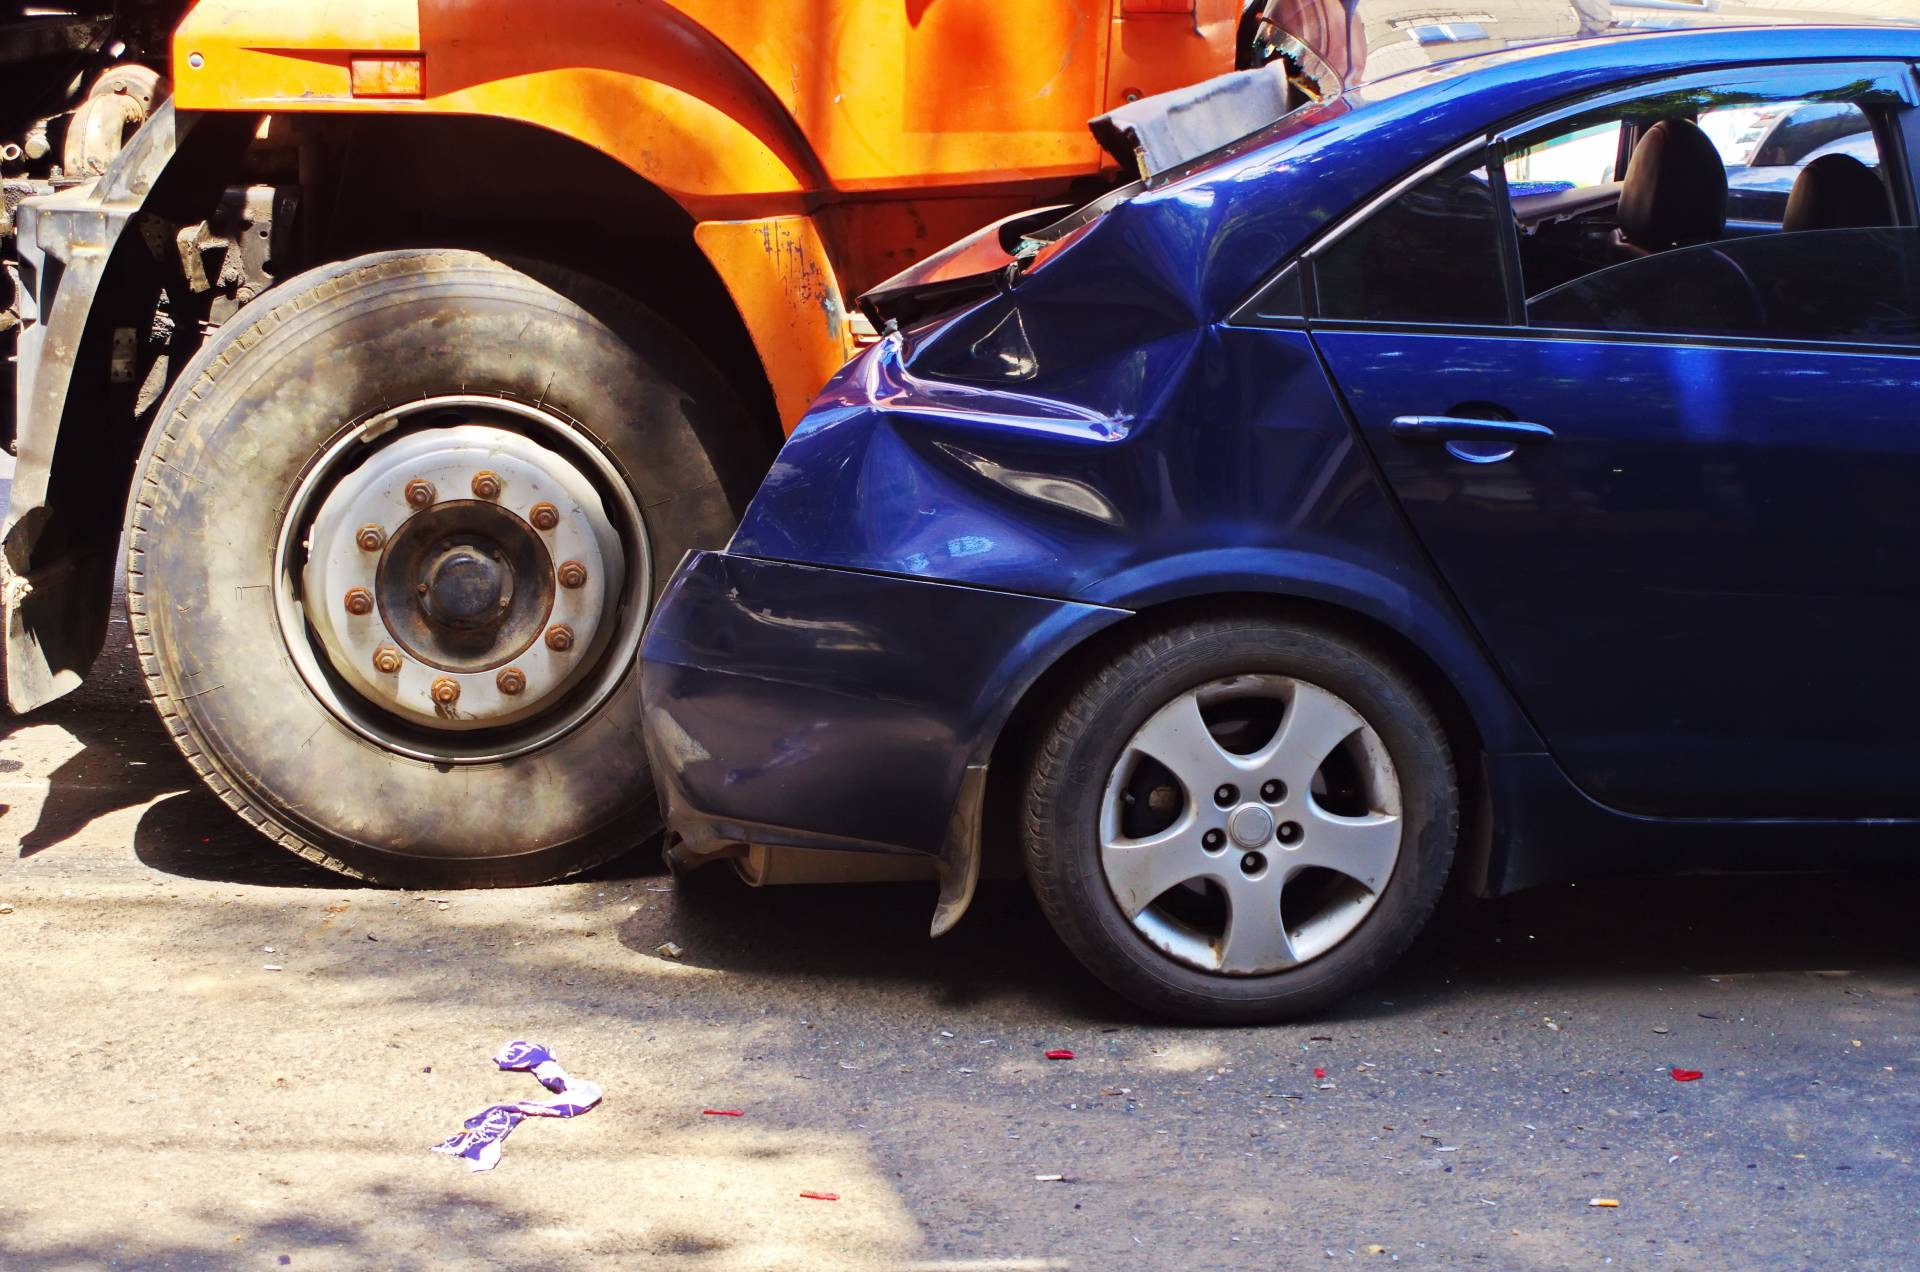 Have questions about your accident? Injured due to an irresponsible motorist? Contact us today to speak with a qualified personal injury attorney!